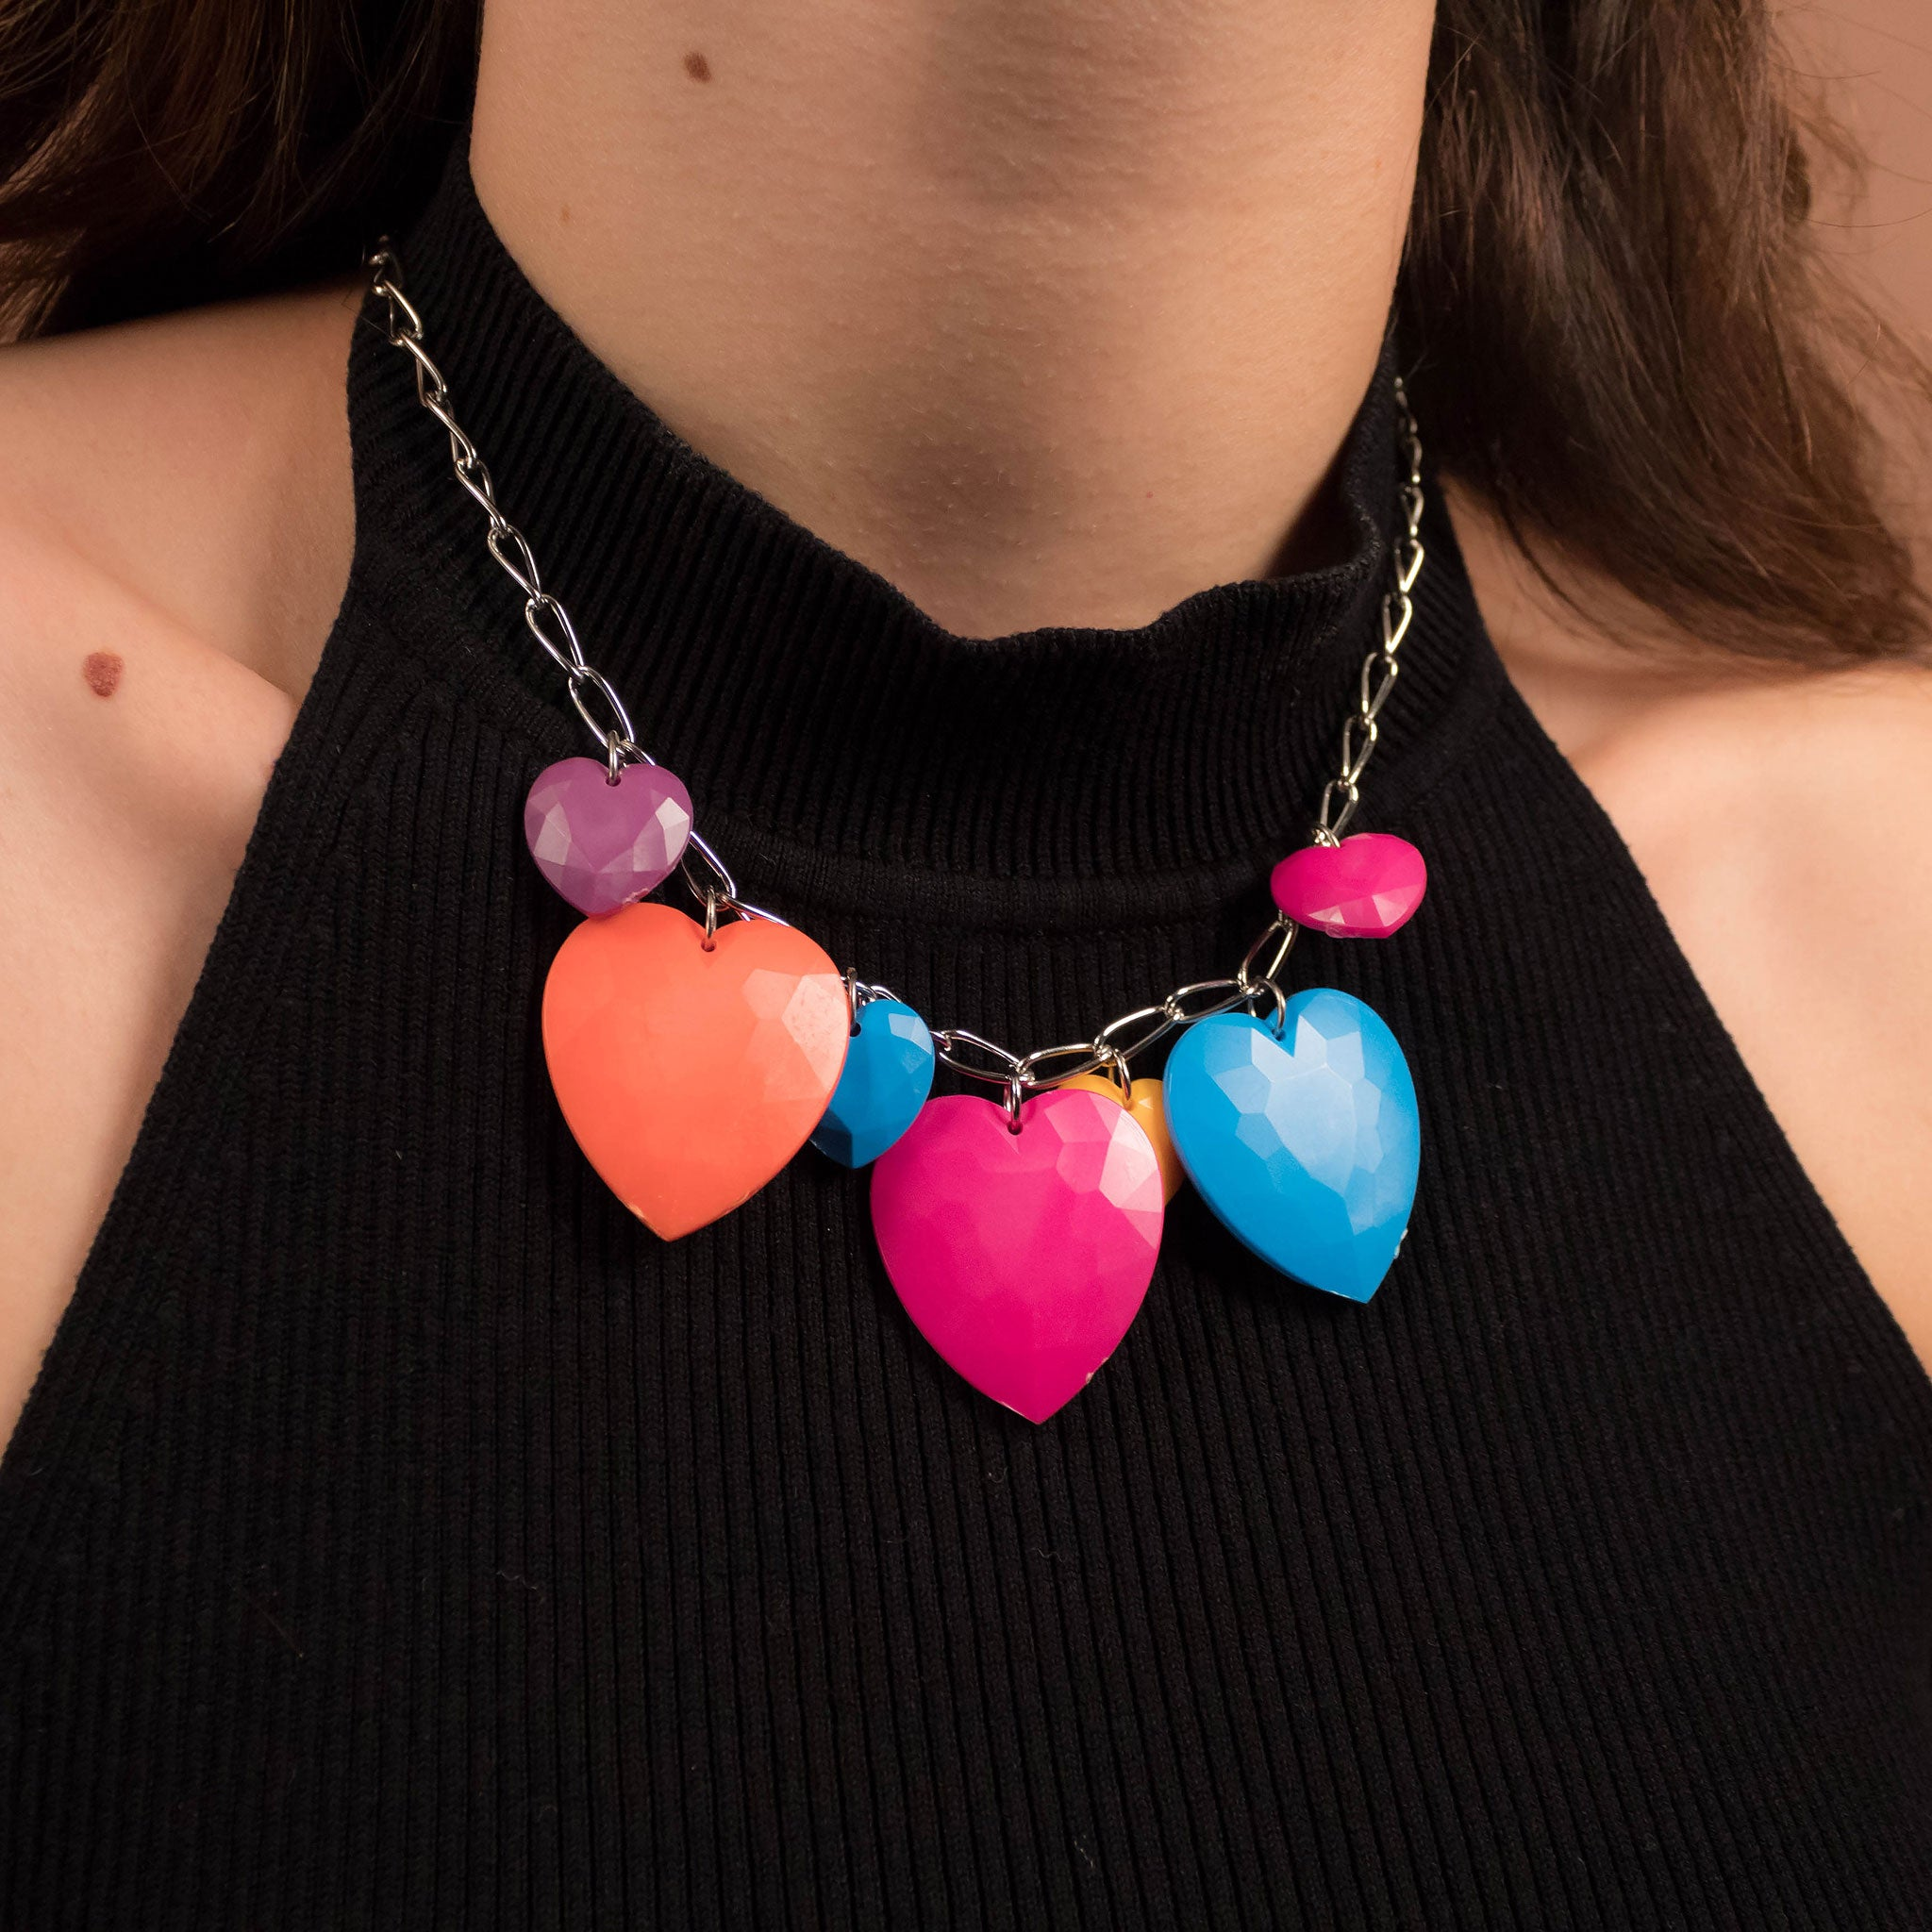 80s Heart Charm Necklace